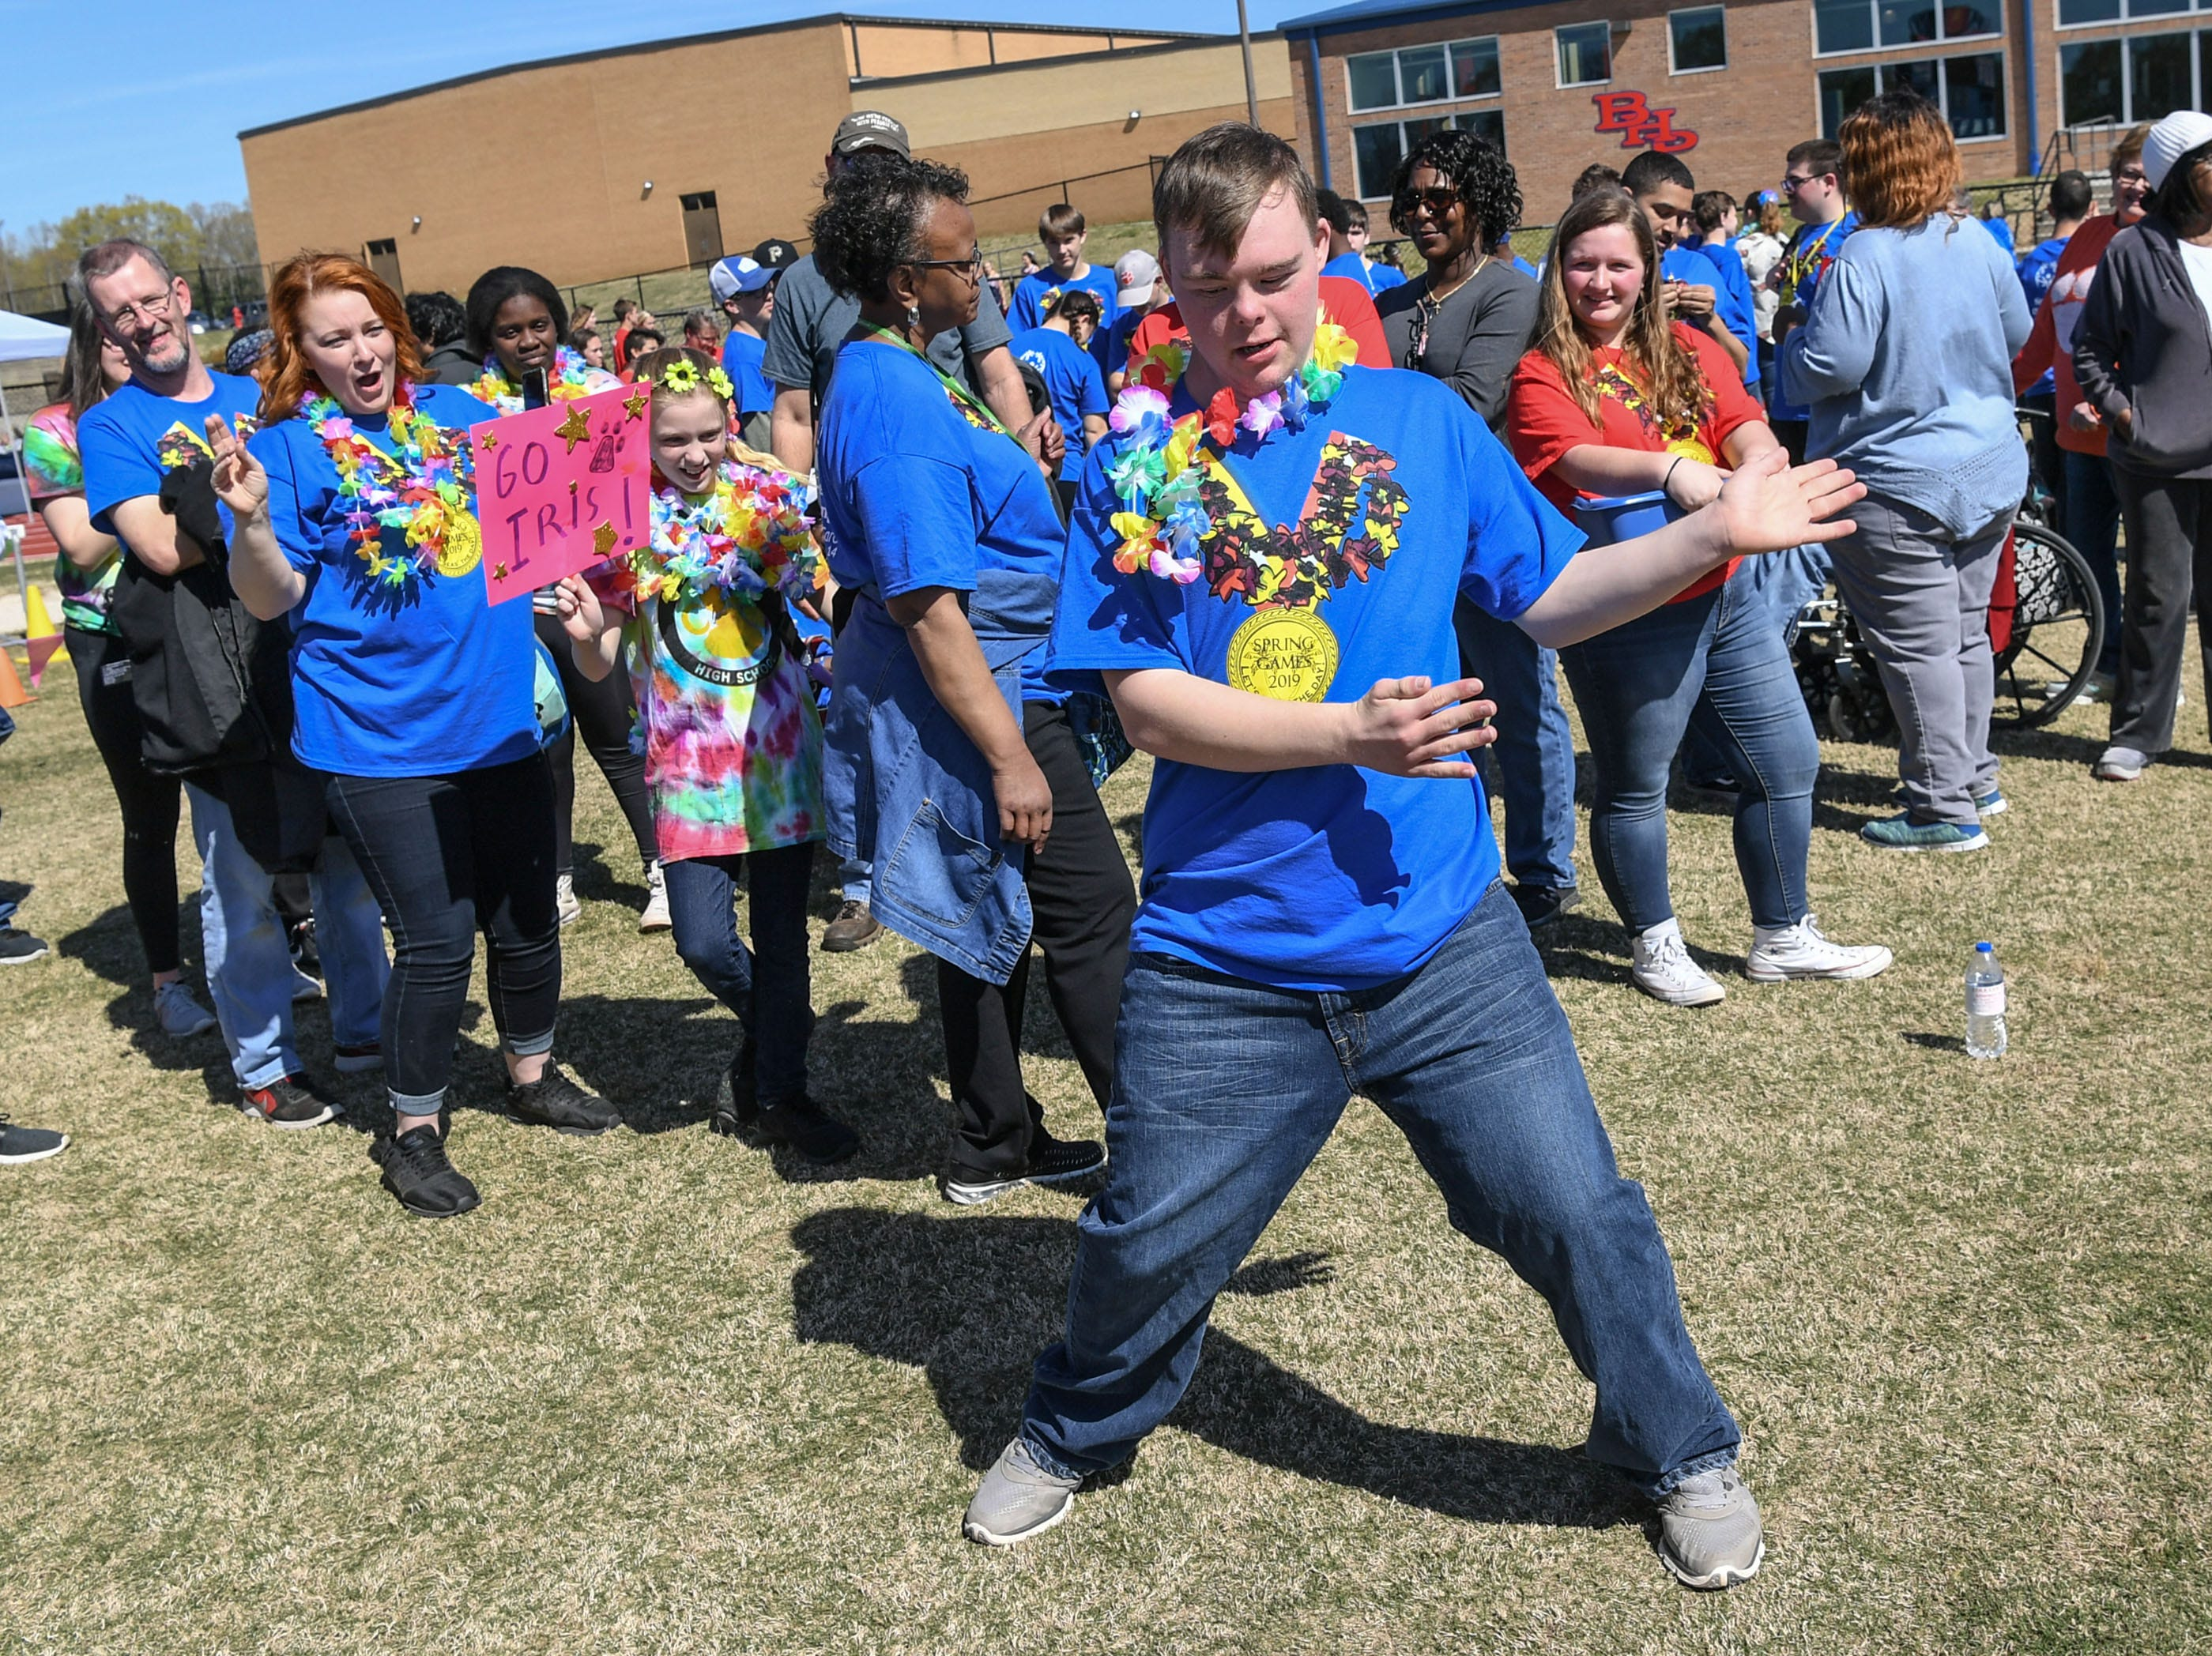 Harrison Harrell of Iva dances after he threw a softball far during the Special Olympics South Carolina Area 14 Spring Games at Marlee Gambrell field at Belton-Honea Path High School Wednesday.